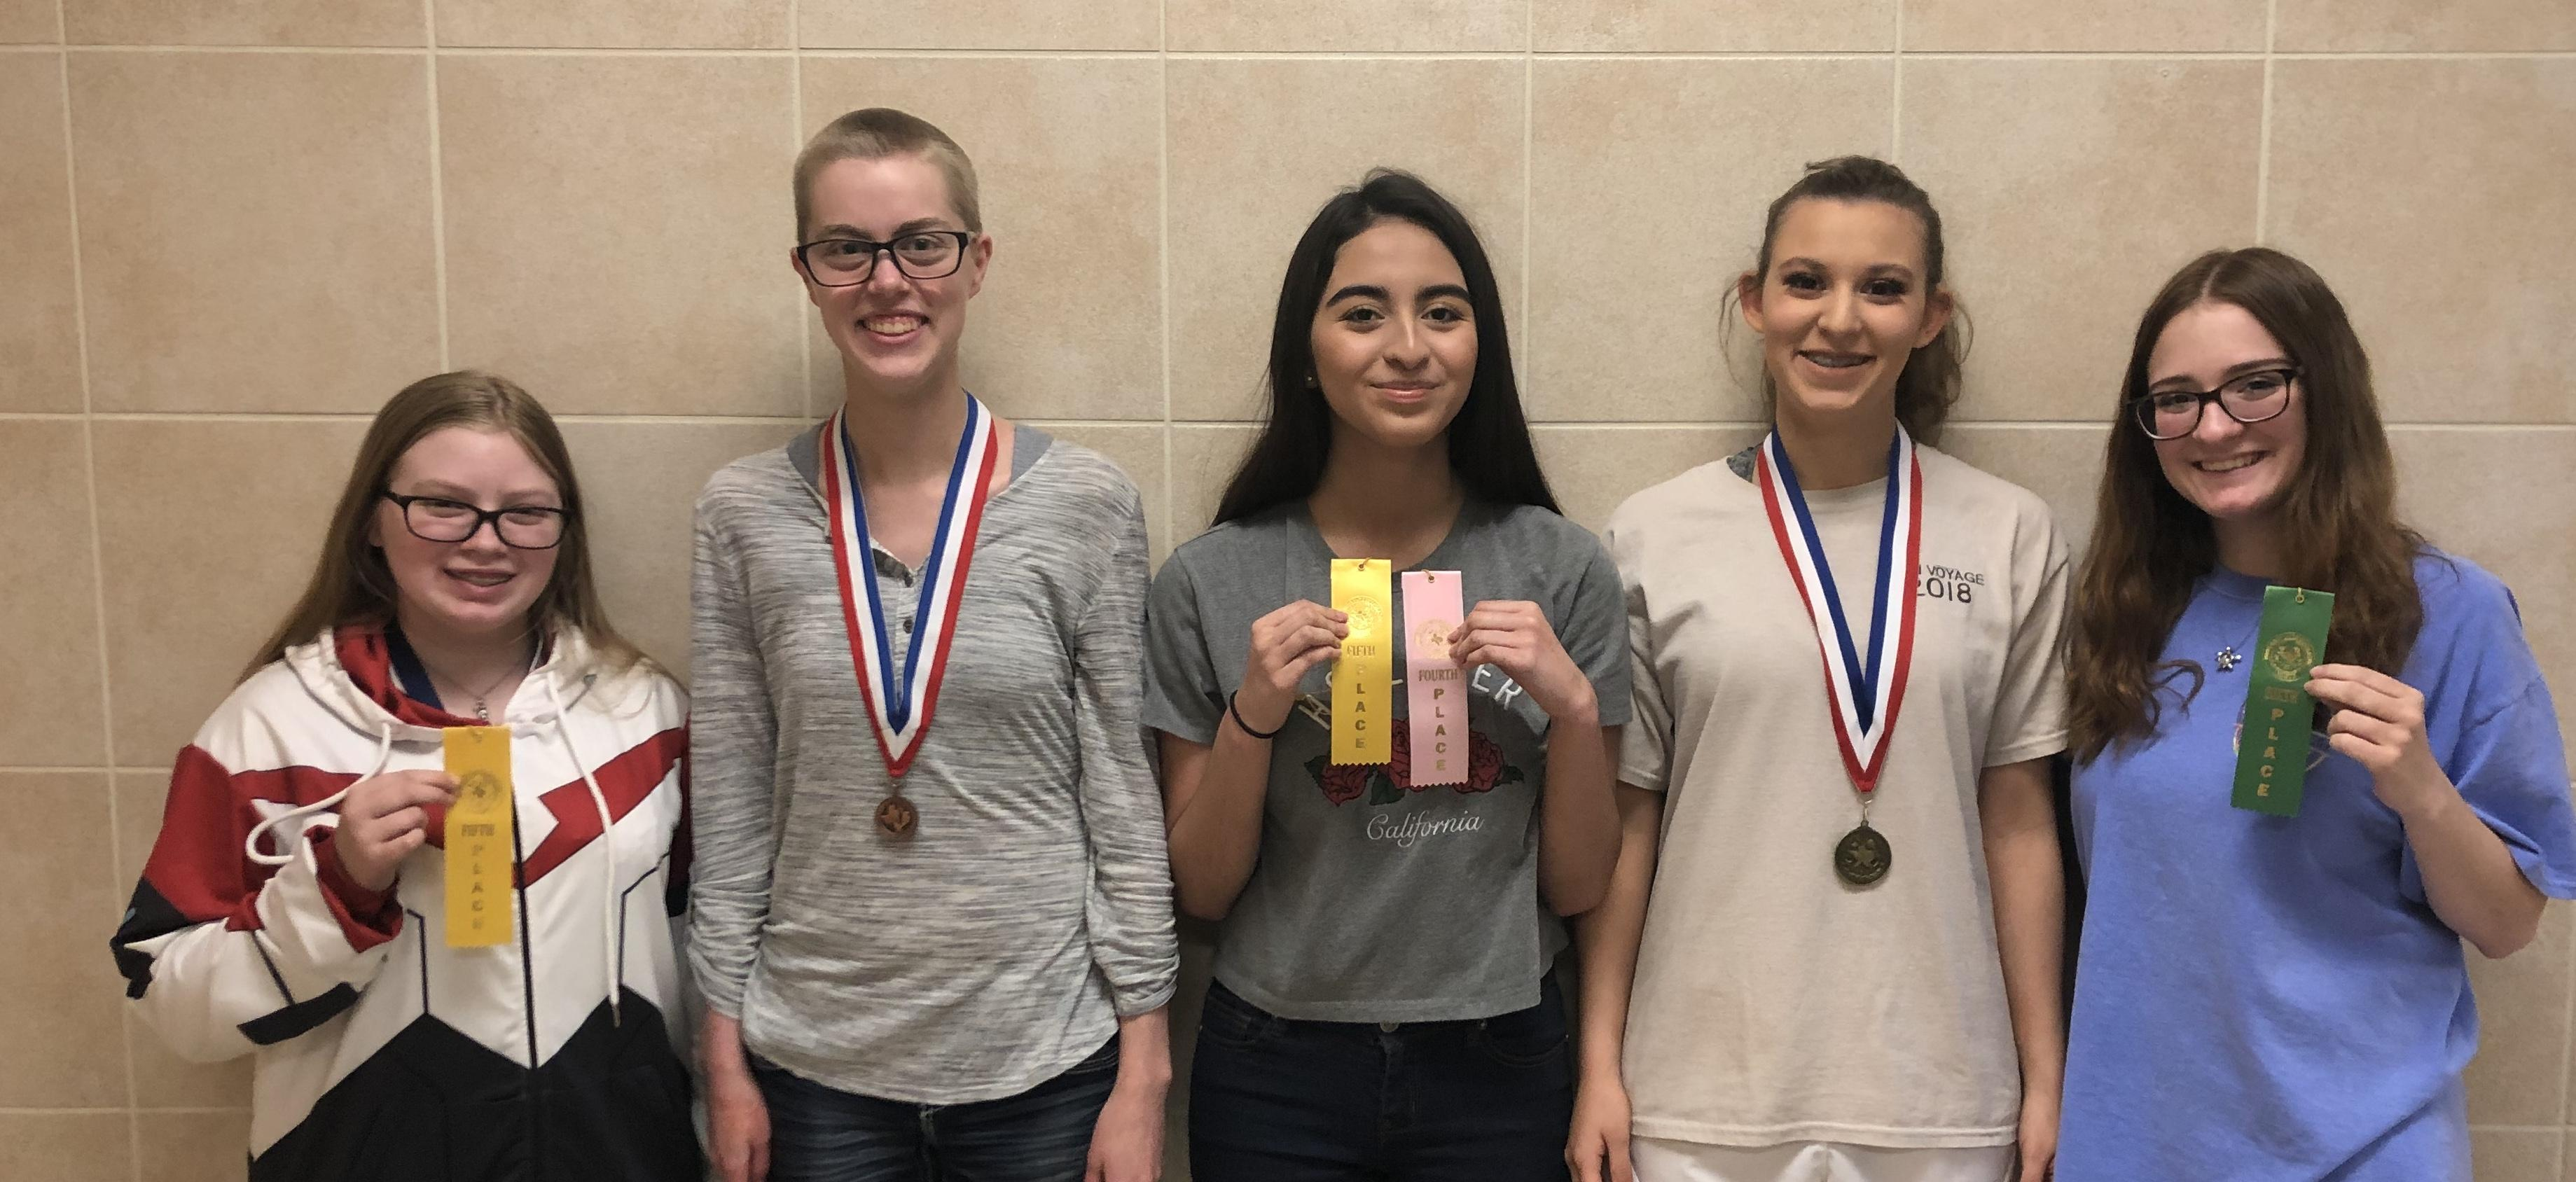 Brewer High School students recently competed in the District UIL Academic Competition in speech and debate, and three will advance to regionals at Texas Tech University, six as alternates.